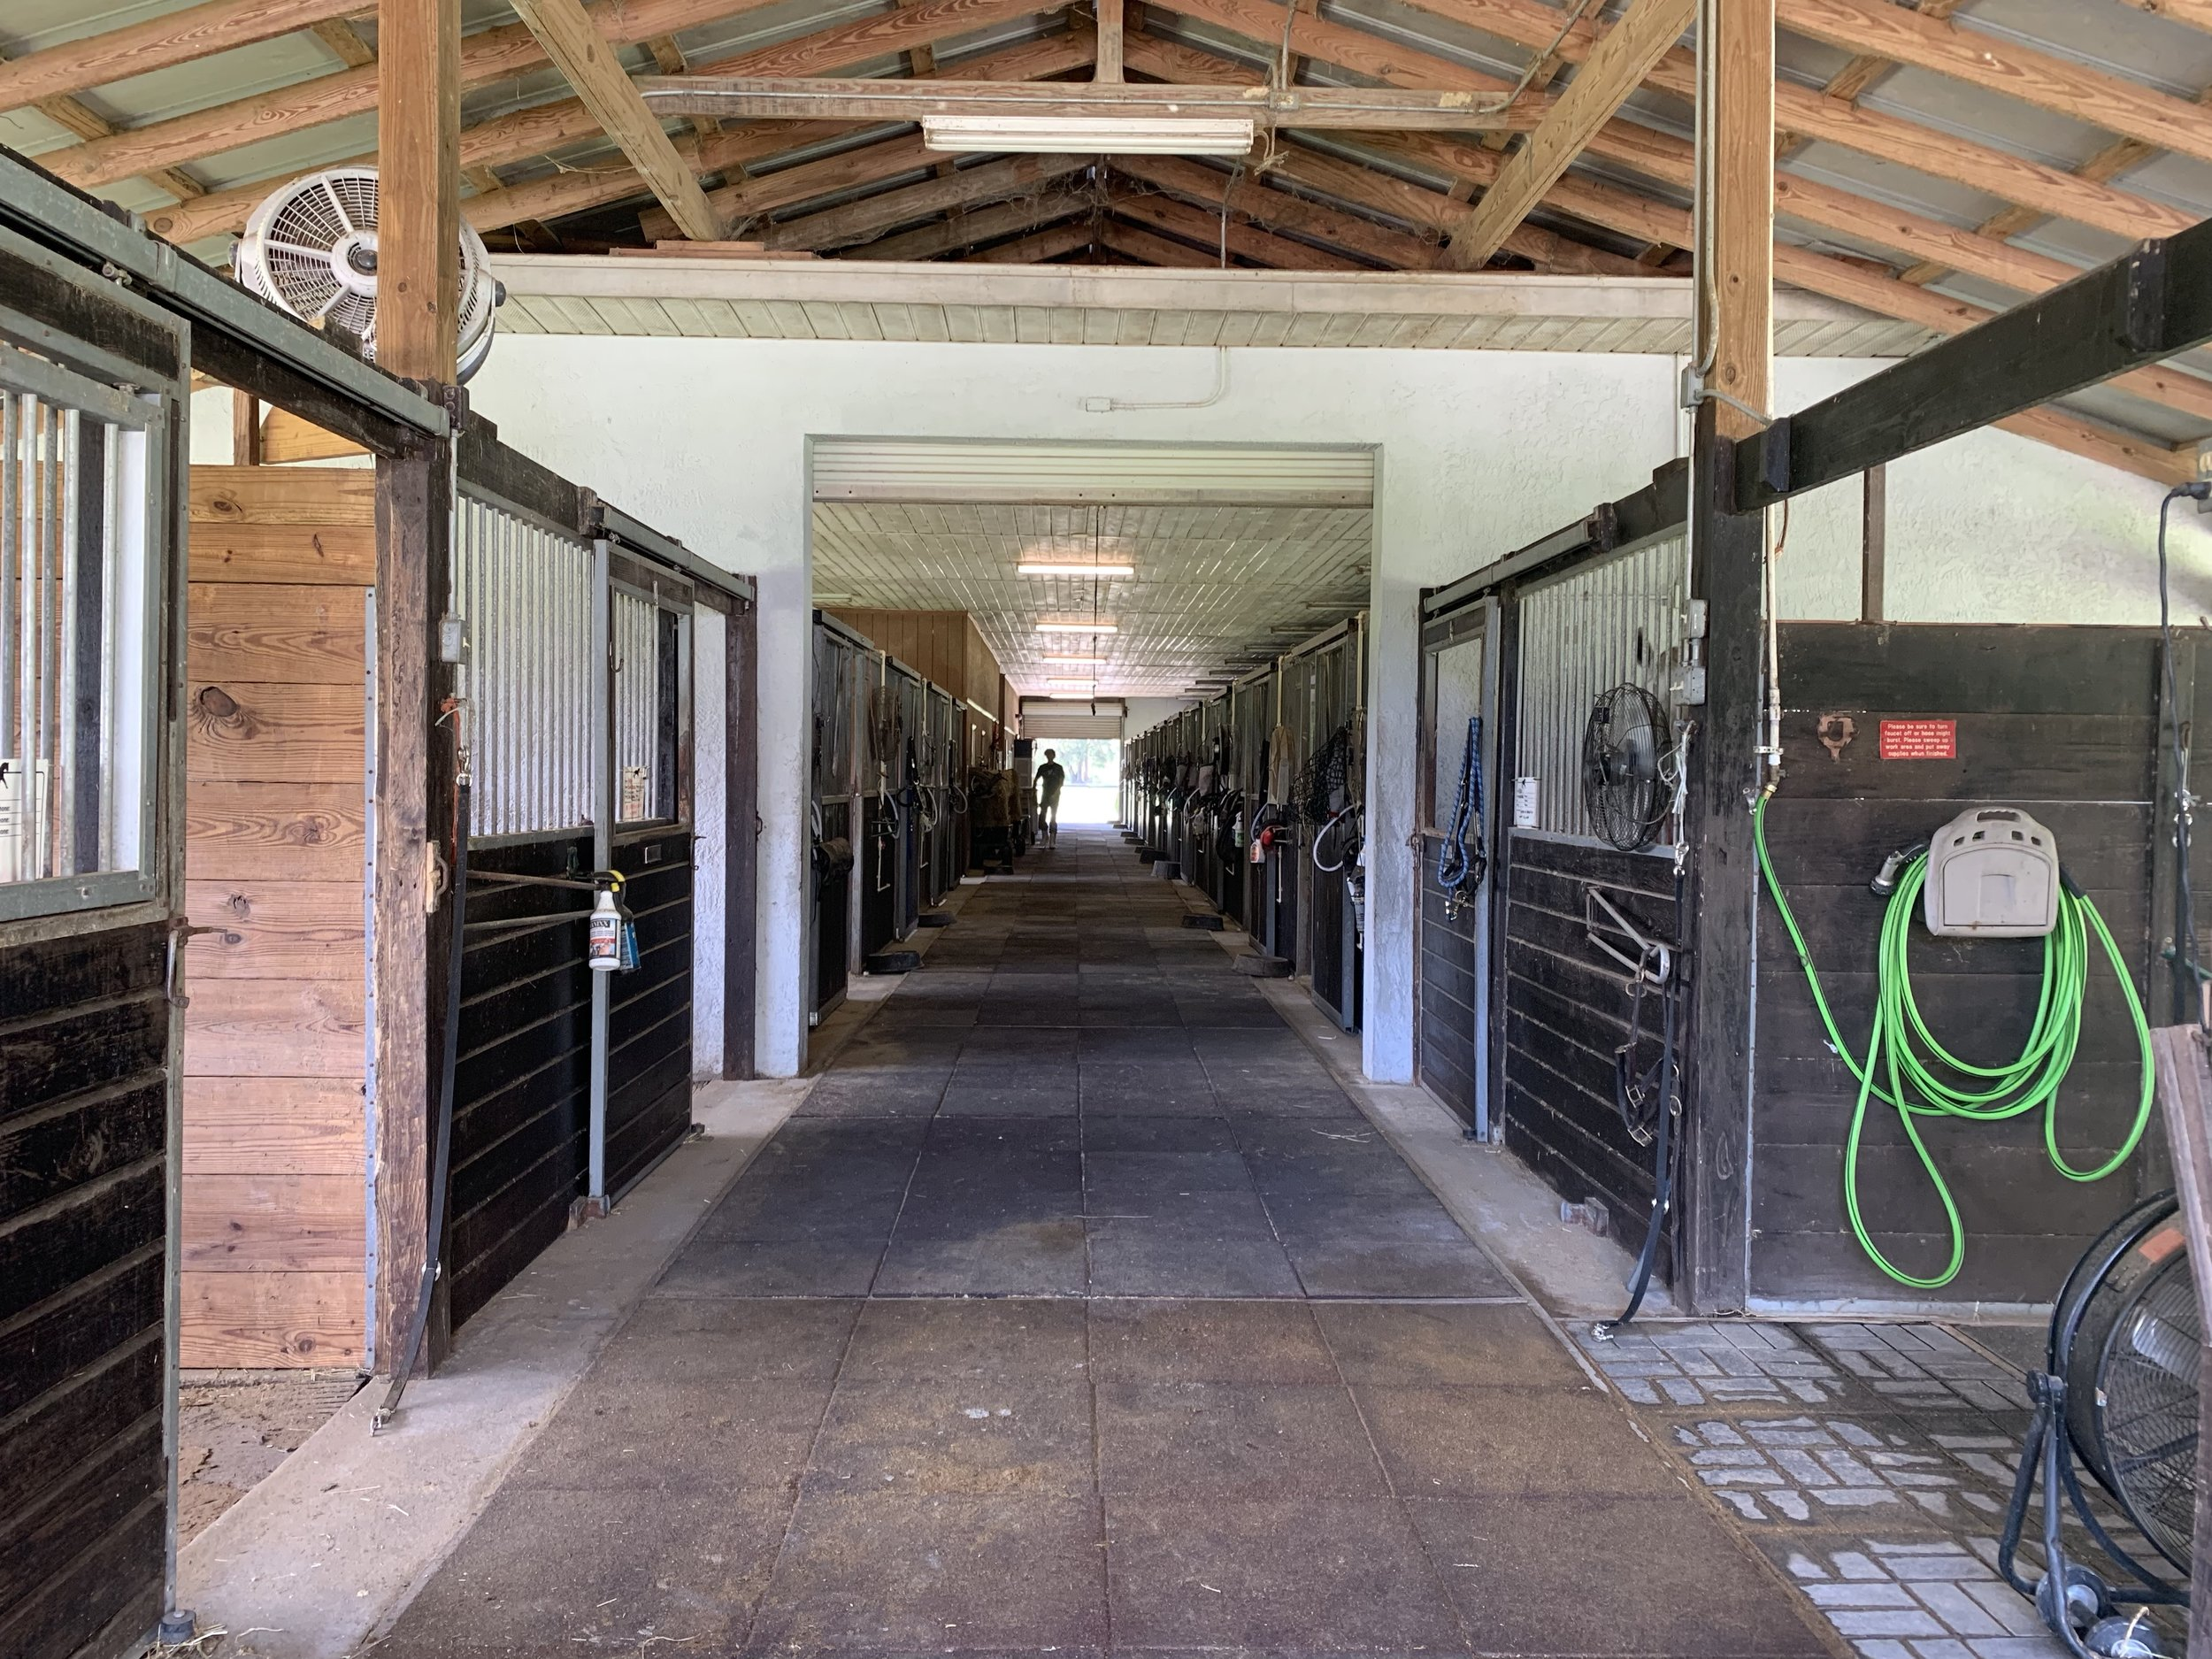 WASH STALLS - We have five indoor wash stalls, three of which have both with hot and cold water. Additionally, we have one large outdoor wash rack with good high pressure for washing off dirty, sweaty horses quickly!